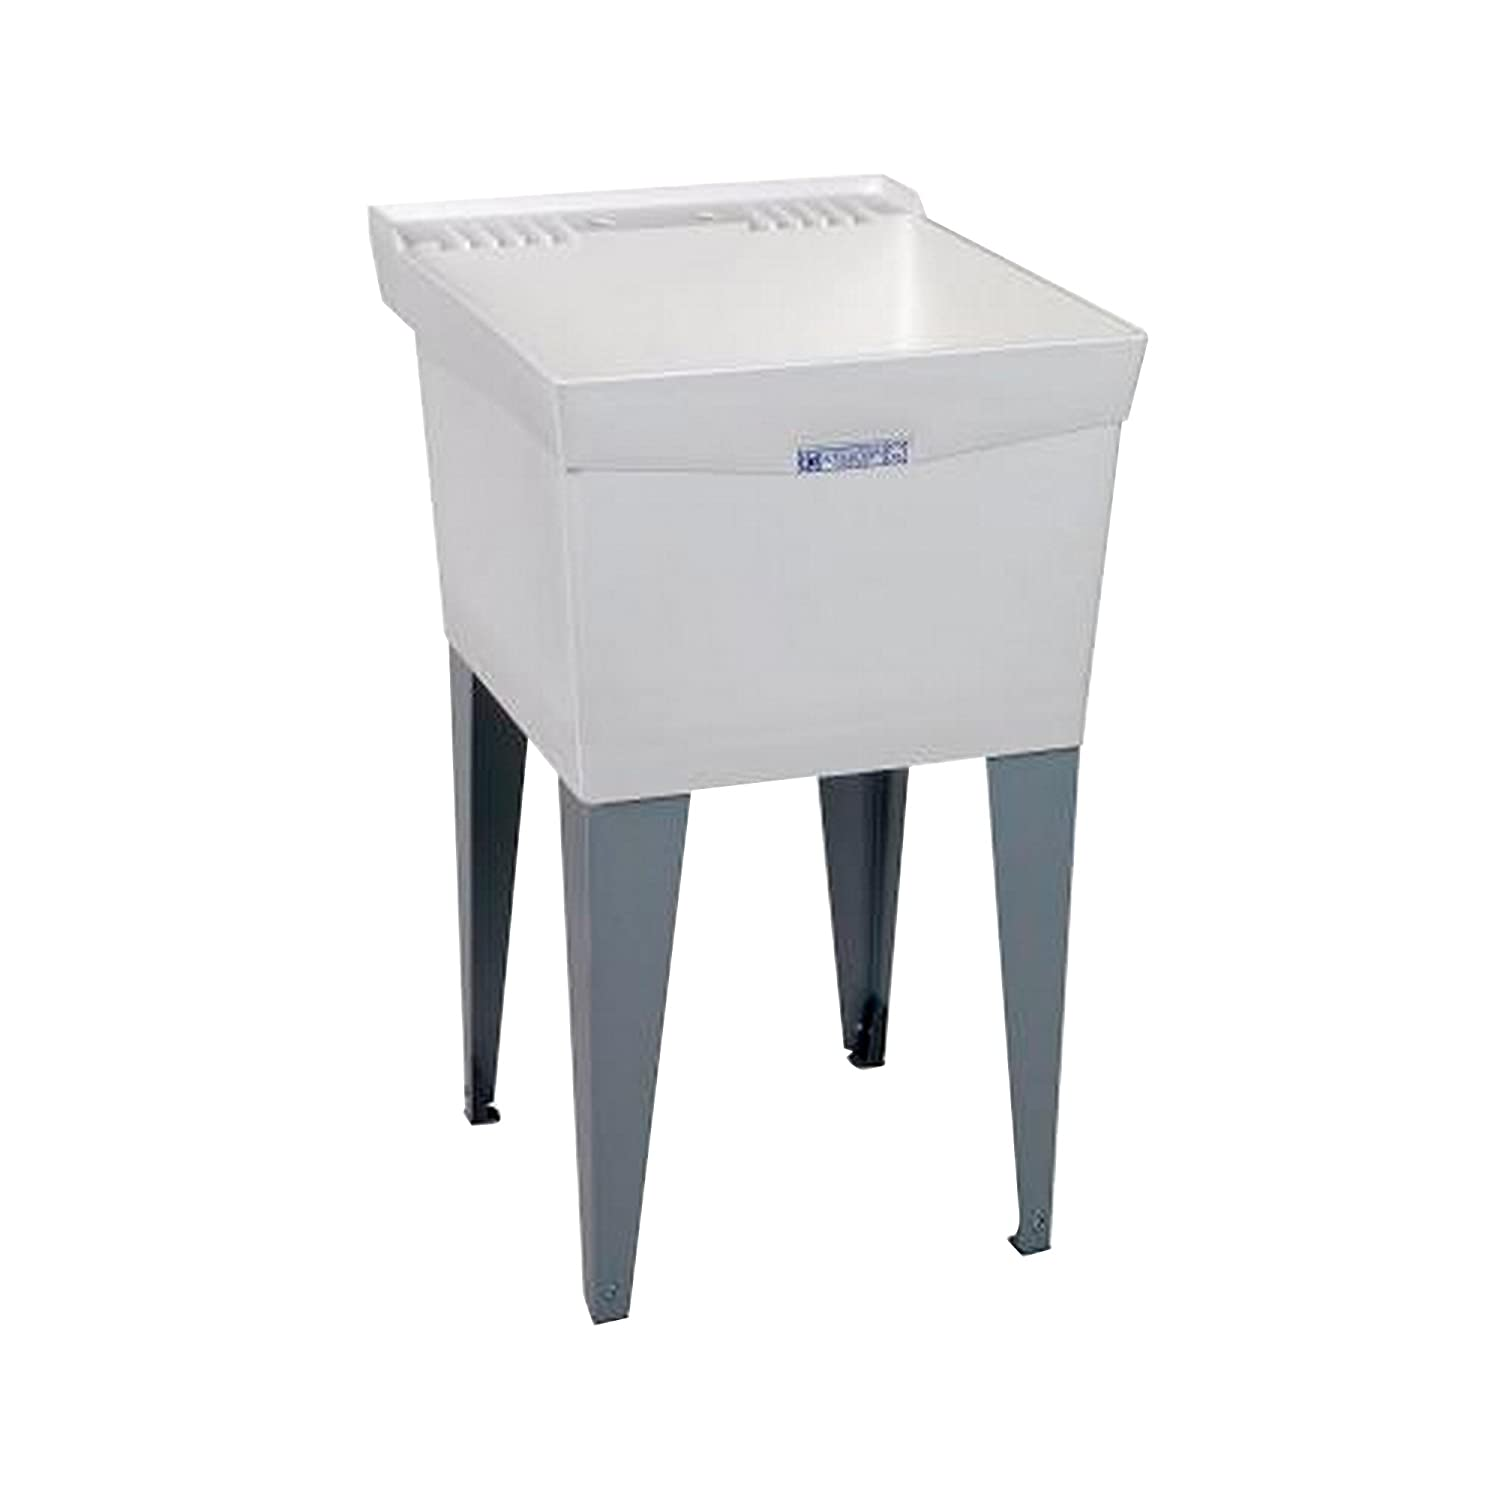 Mustee 19F Utilatub Laundry Tub Floor Mount, 24 Inch X 20 Inch, White: Utility  Sinks: Amazon.com: Industrial U0026 Scientific